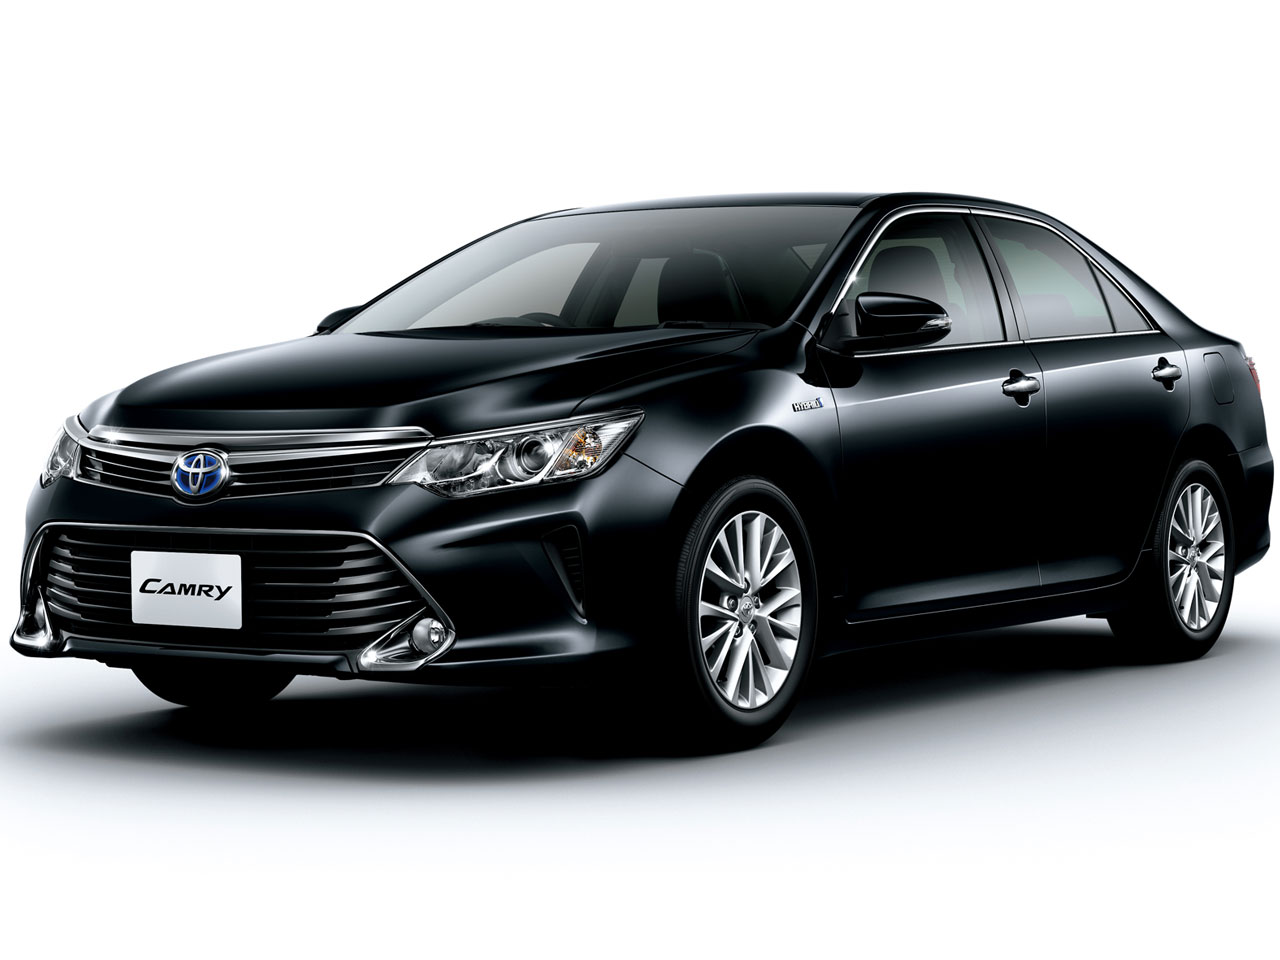 toyota camry in usa price latest toyota camry 2014 user review and price in usa and dubai 2017. Black Bedroom Furniture Sets. Home Design Ideas